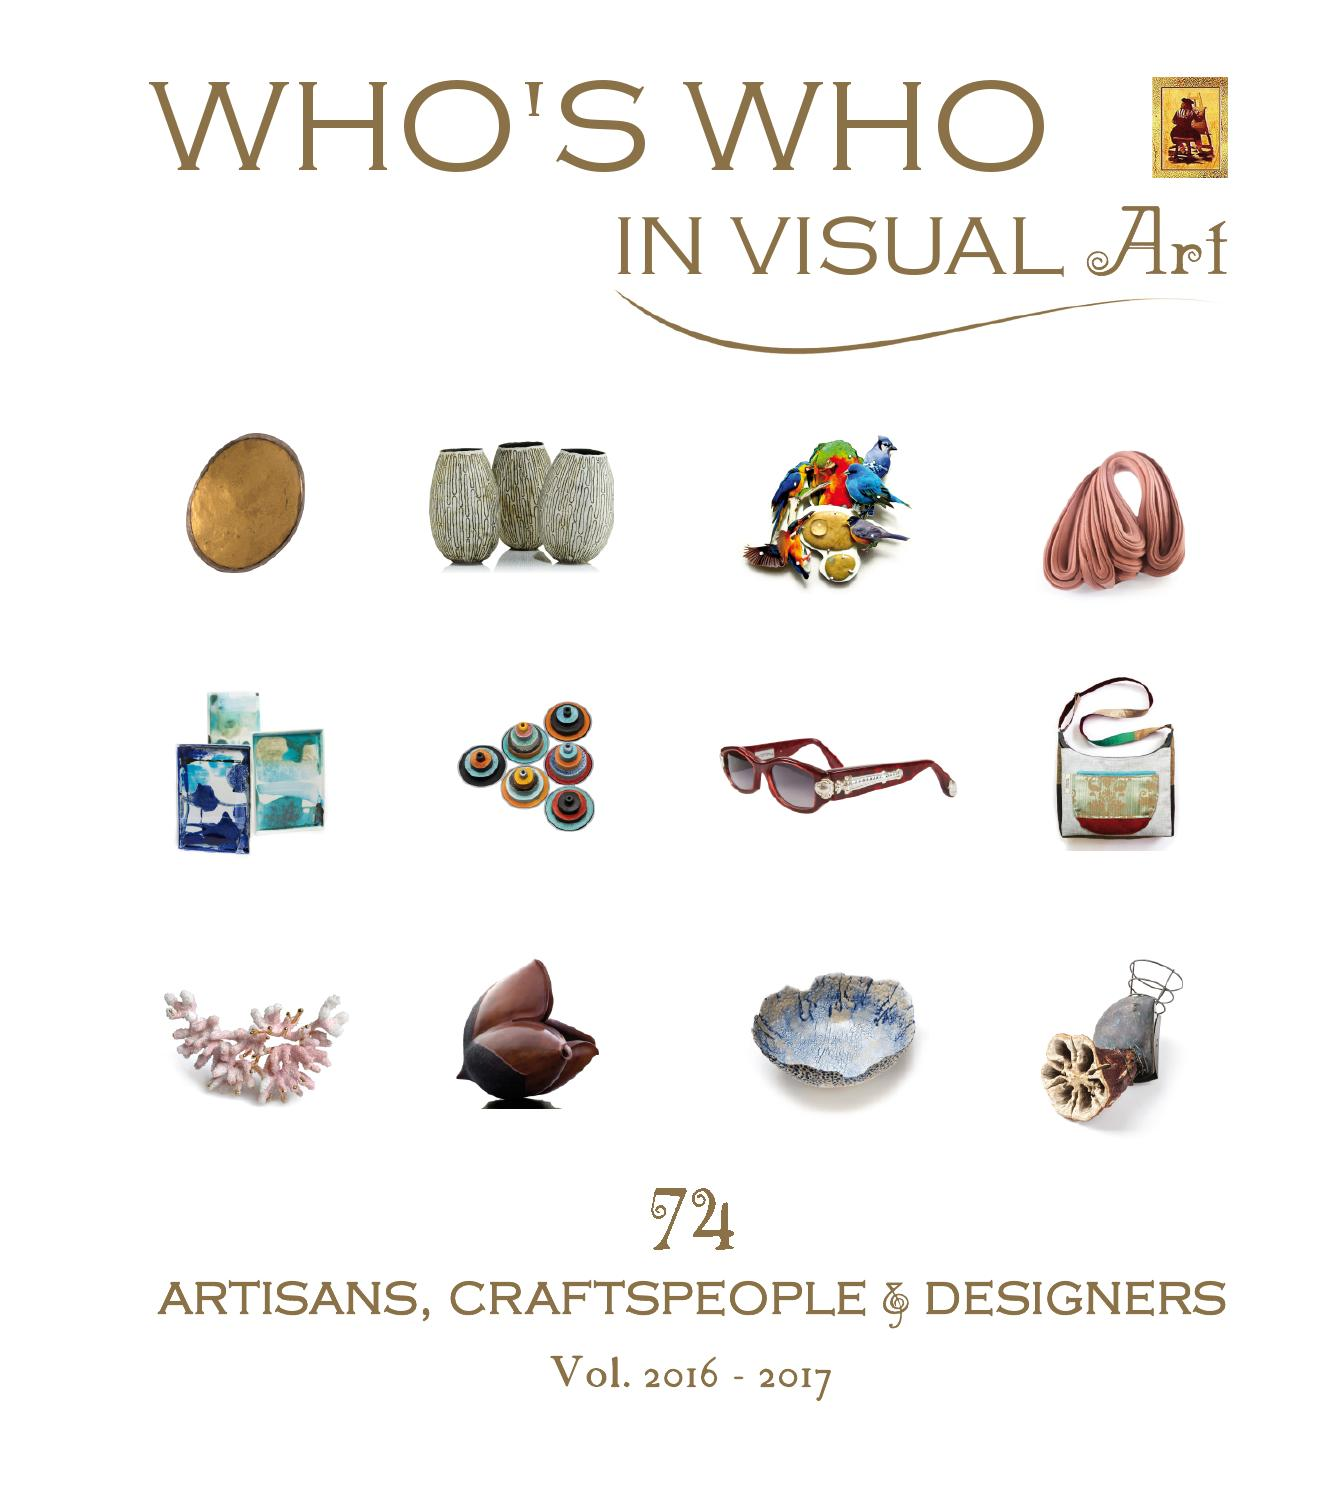 Whos who in visual art 74 artisans craftspeople designers by whos who in visual art 74 artisans craftspeople designers by jrg ullmann issuu buycottarizona